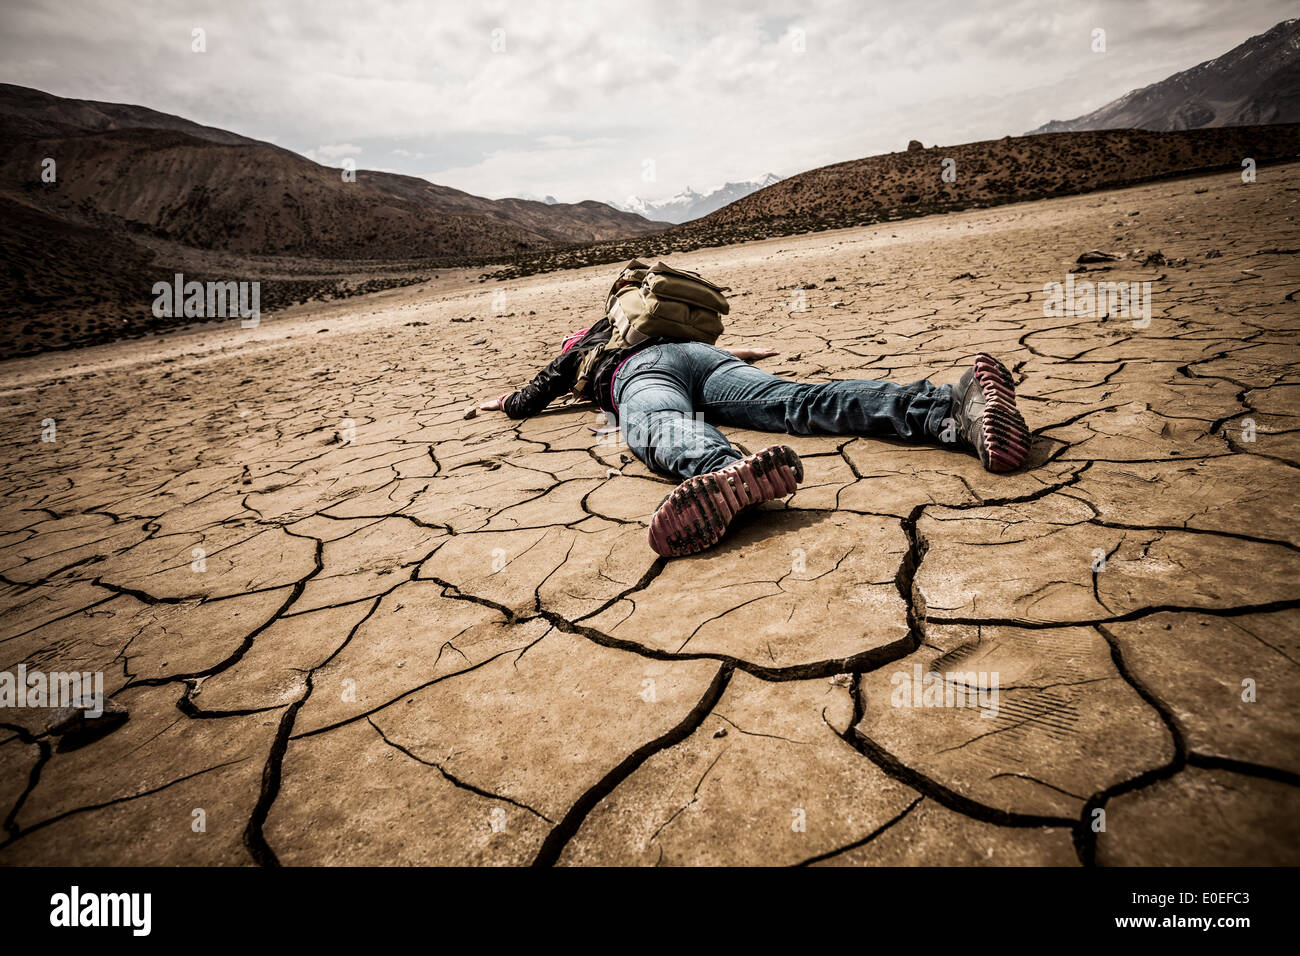 traveller lays on the dried ground - Stock Image